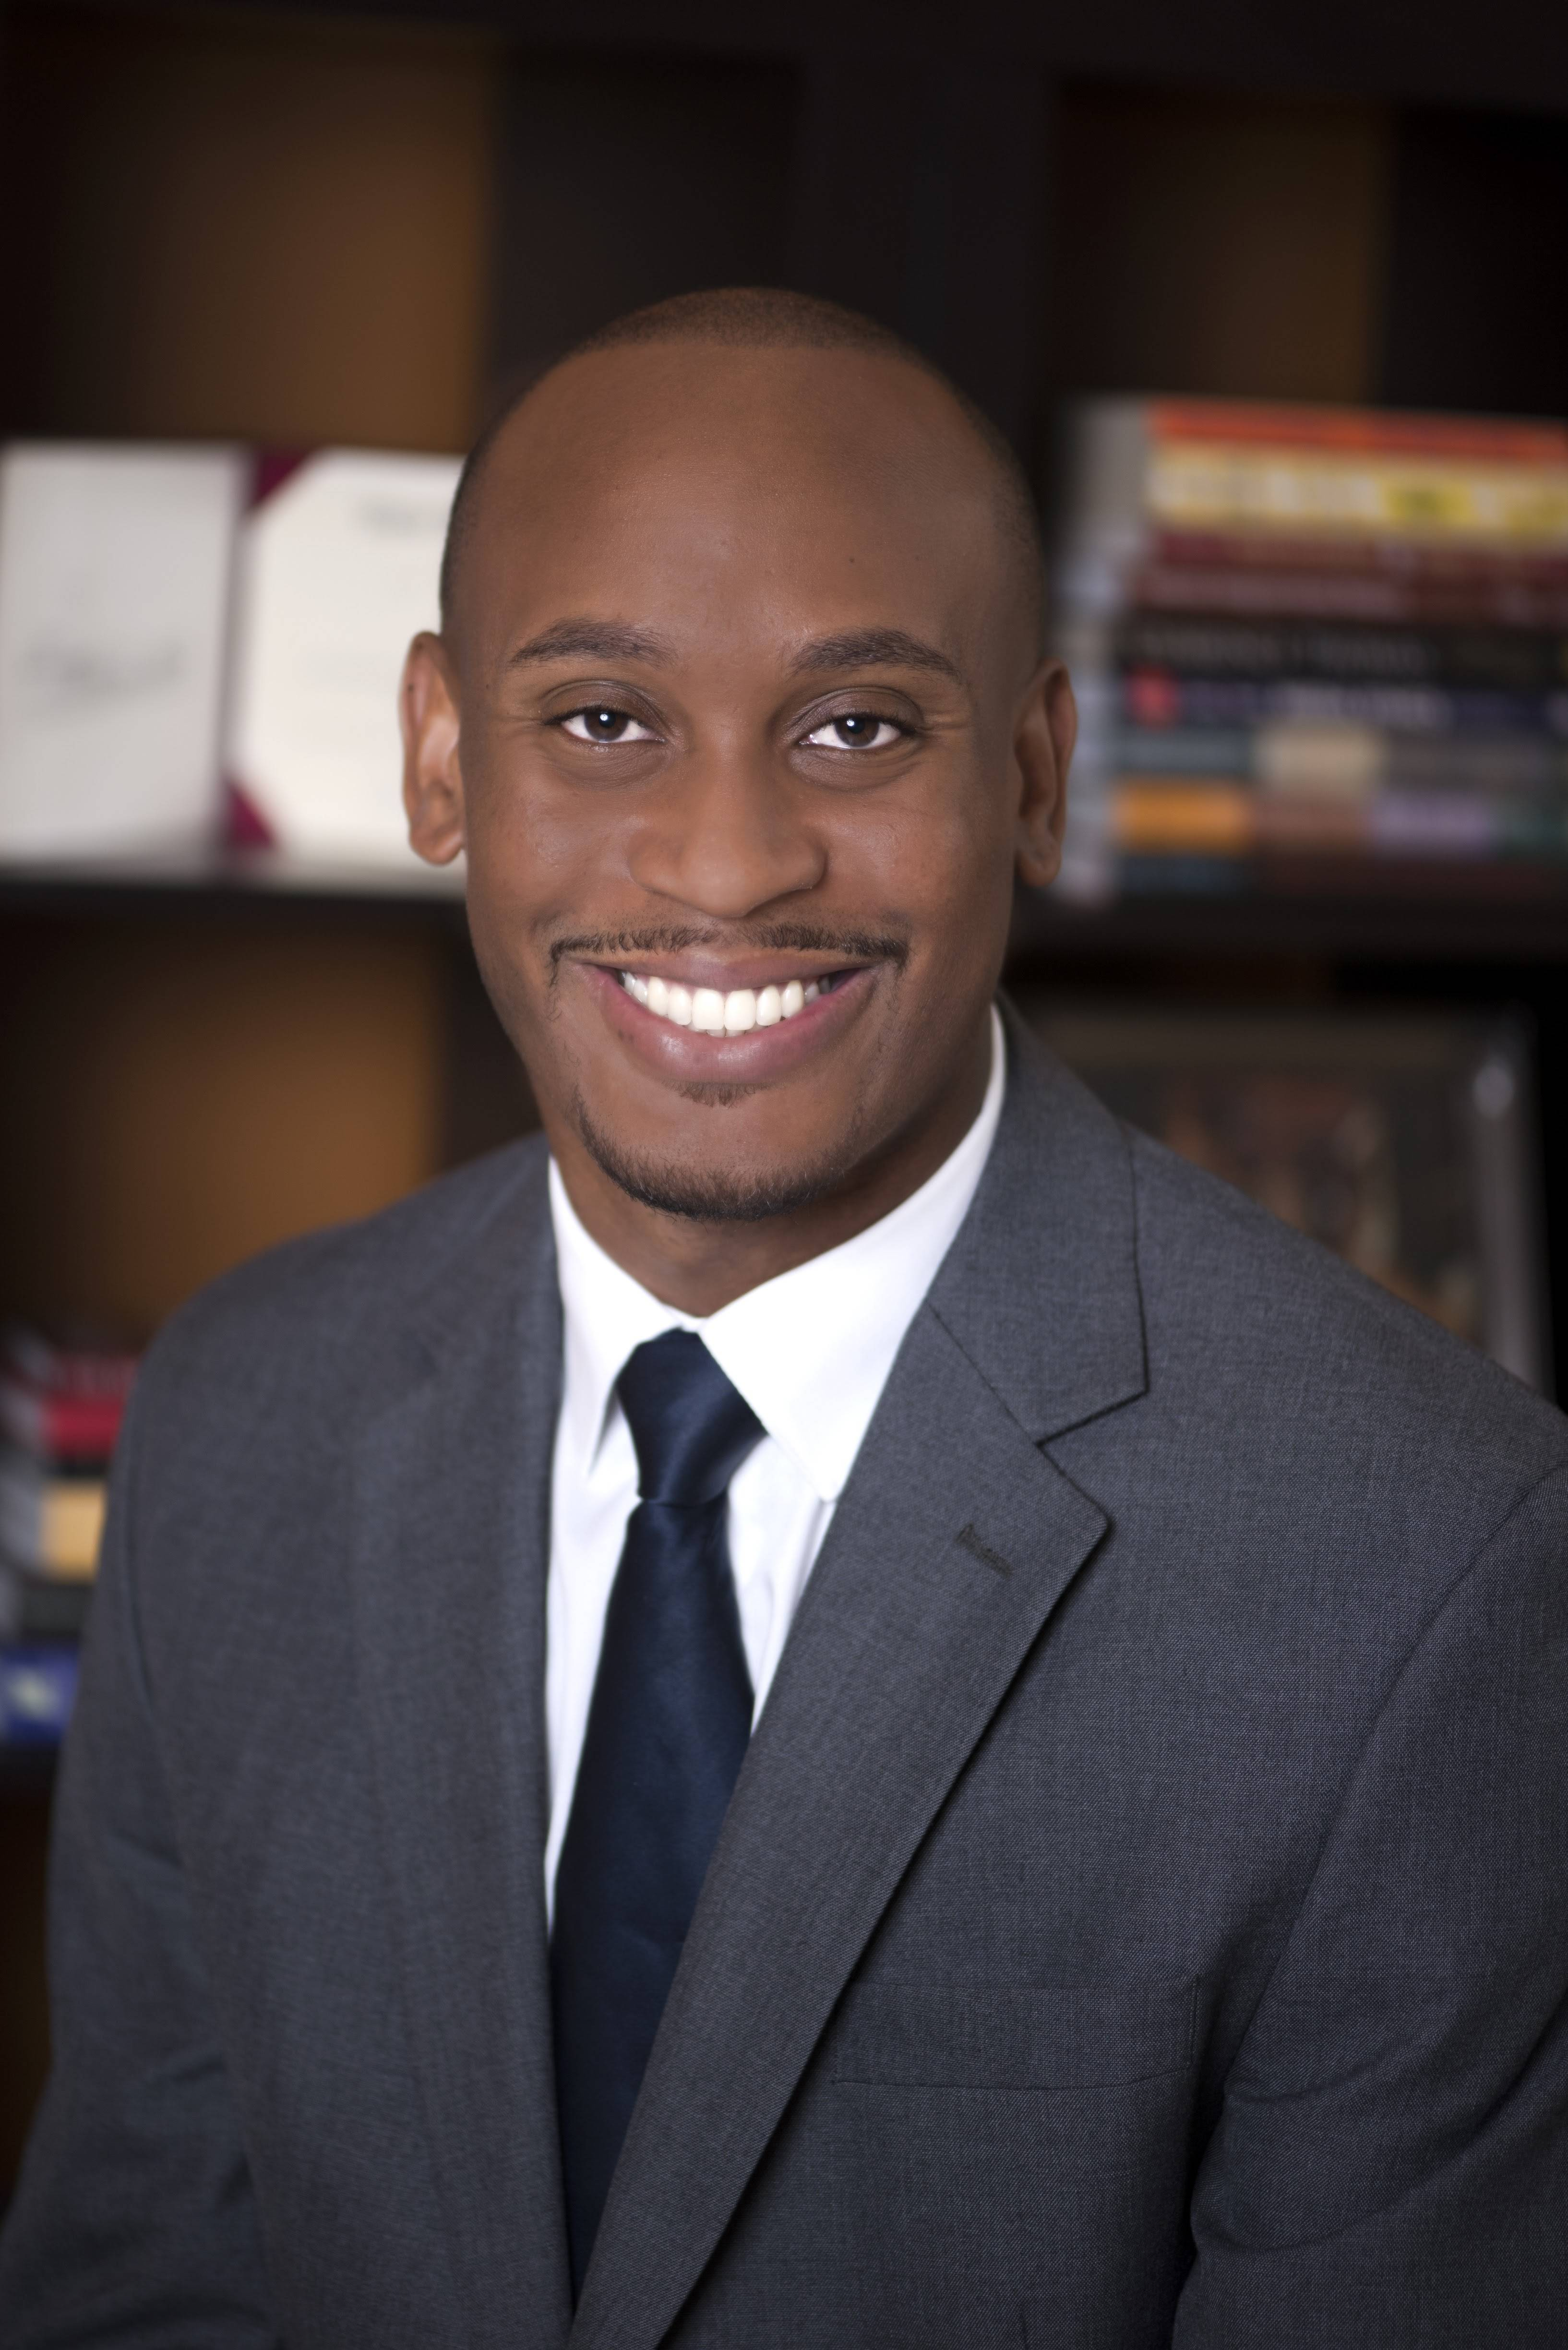 Corey Dixon, an Elgin City Council member, is a product of the Elgin Area School District U-46's African American Parent Leadership Institute.